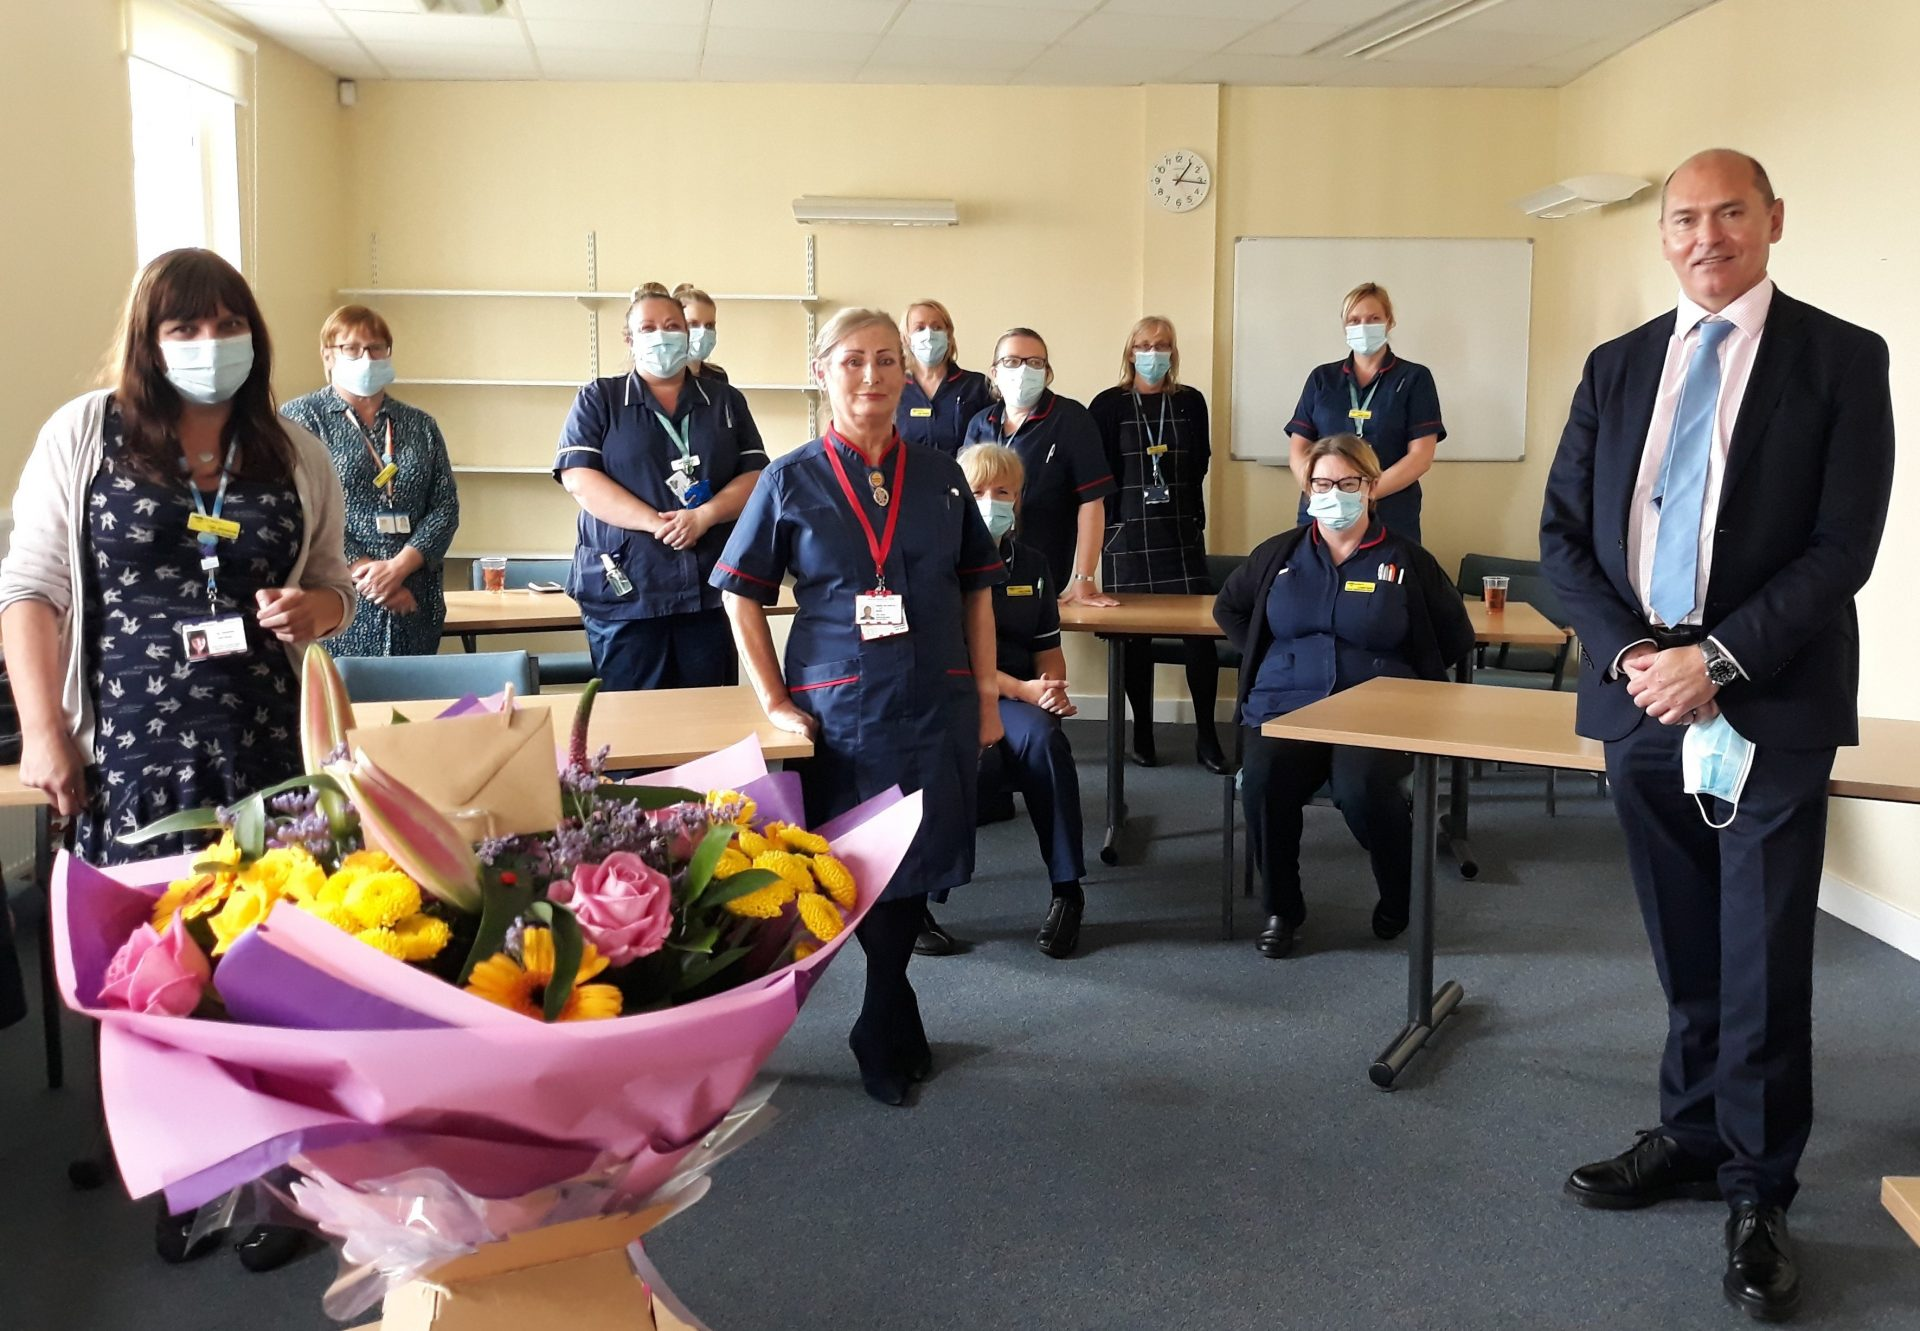 District nurse celebrates half a century in nursing